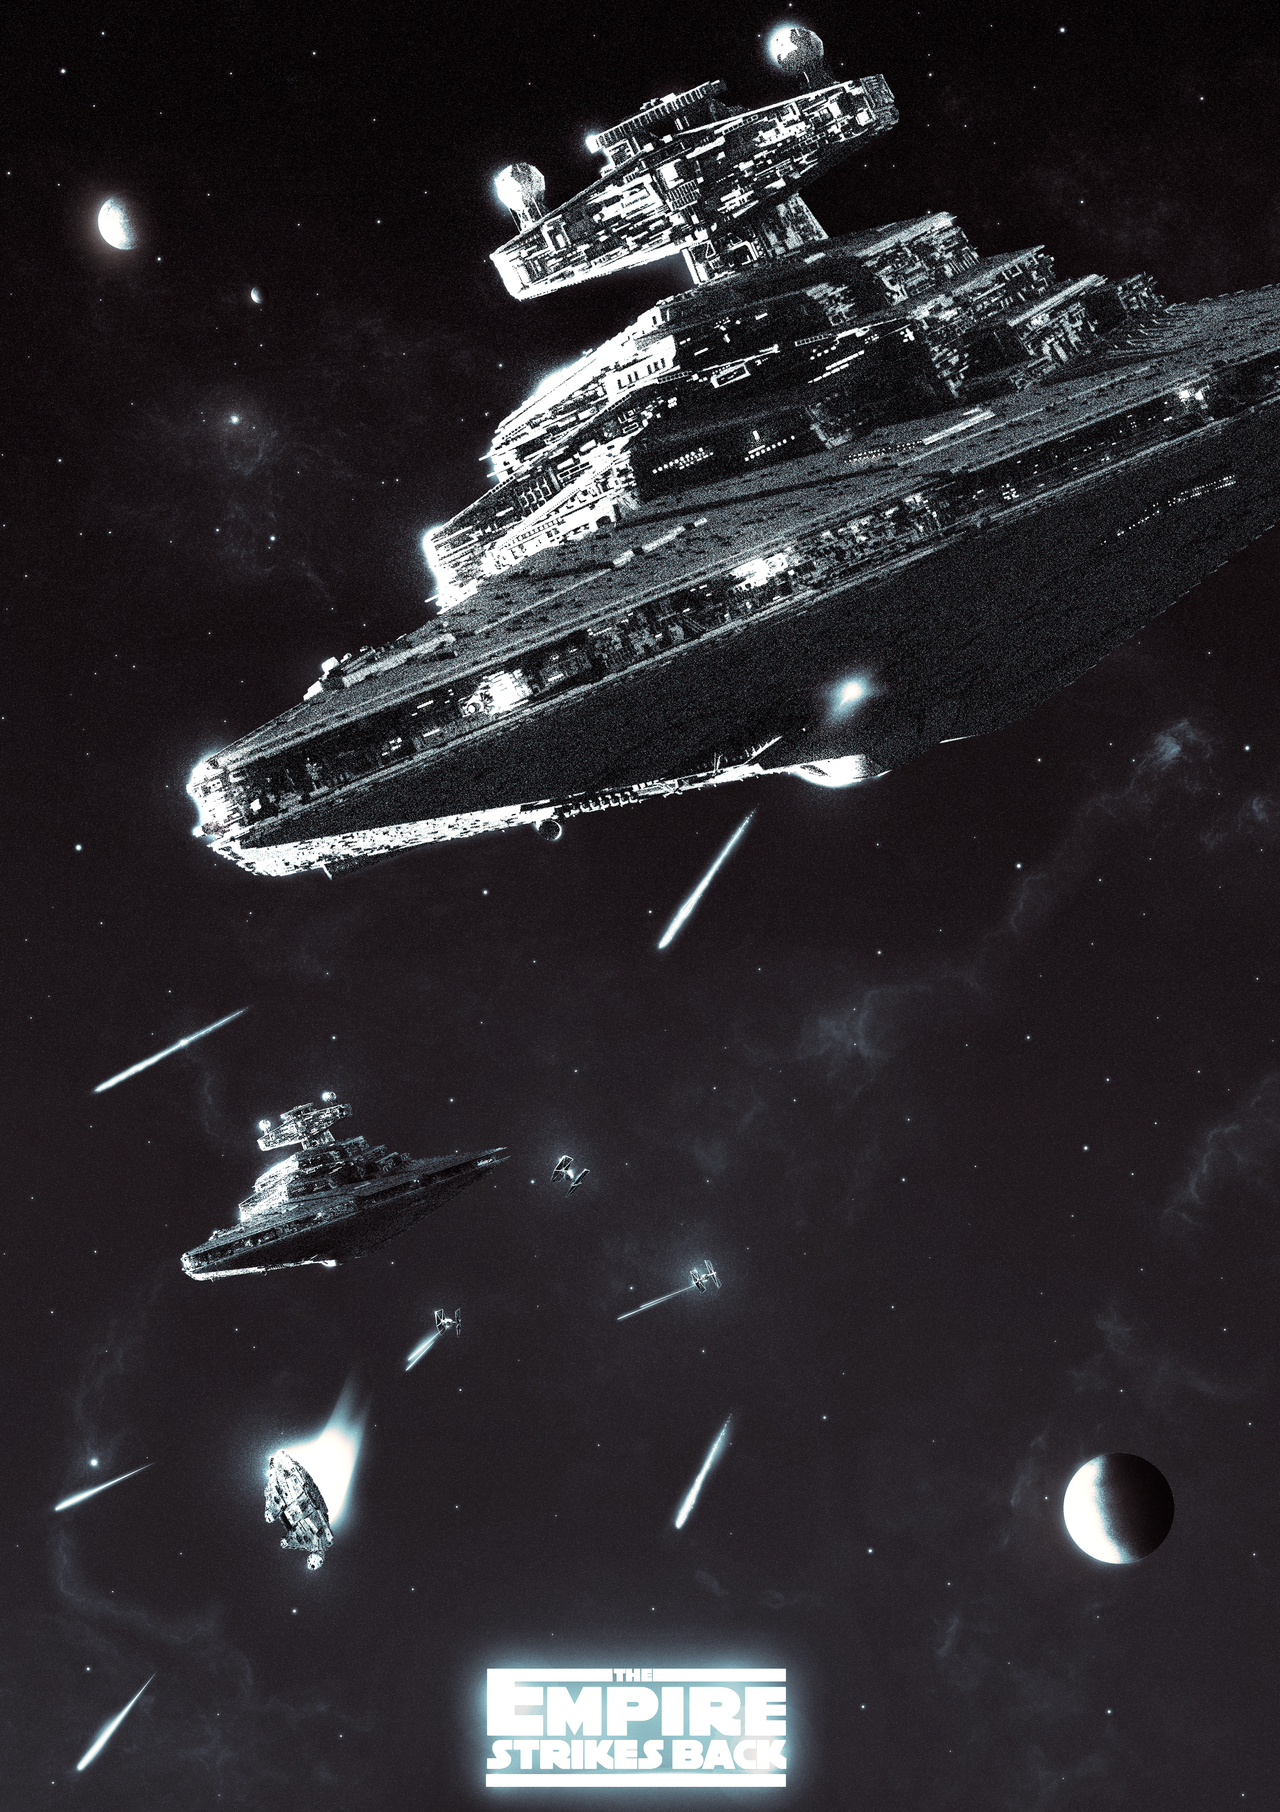 Star Wars A Long Time Ago In A Galaxy Far Far Away Star Wars Wallpaper Star Wars Pictures Star Wars Ships